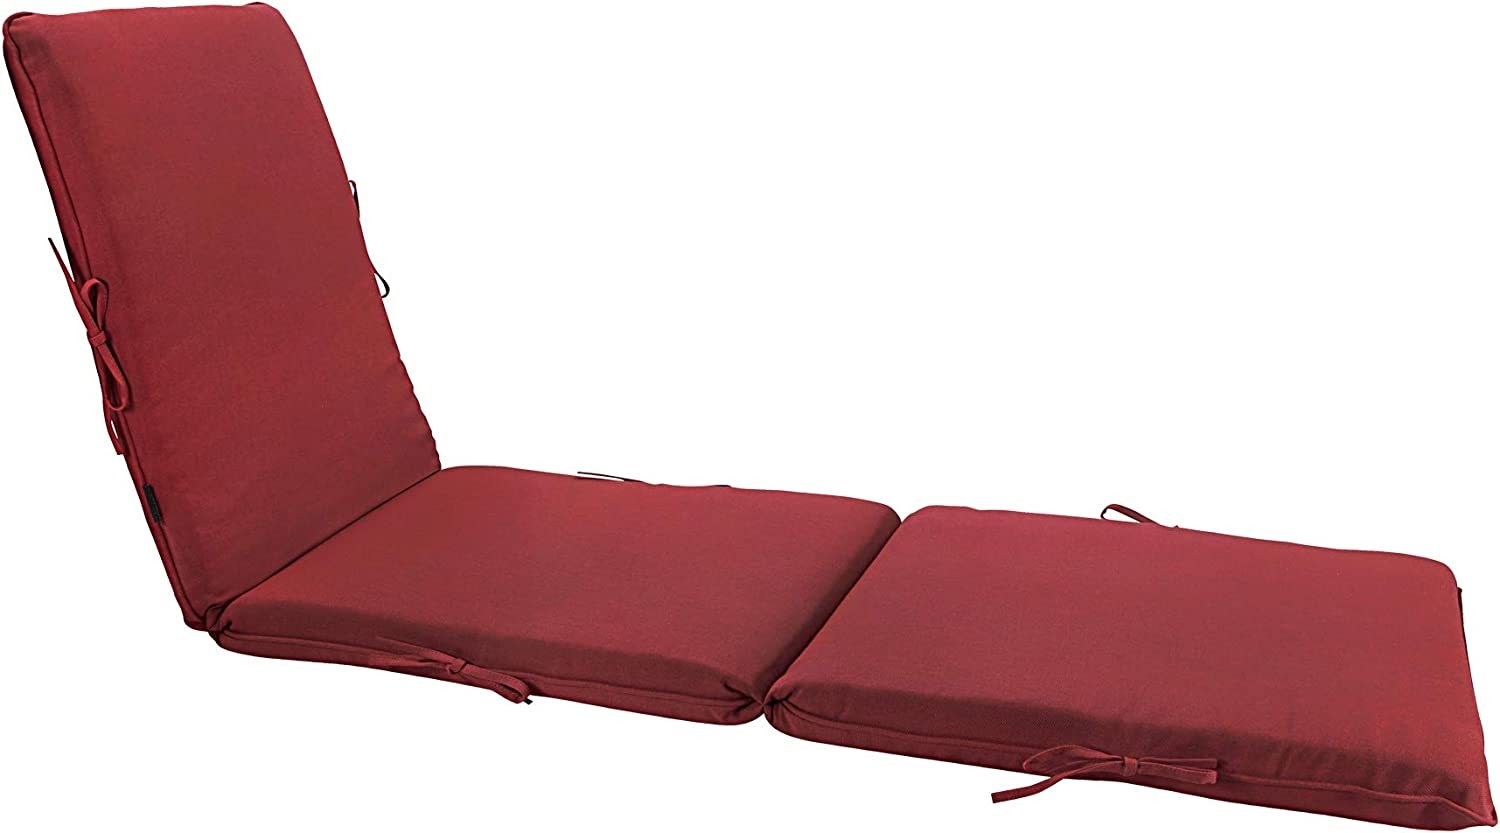 Bossima Indoor Outdoor Lounge Chair Cushions Chaise Bench Seasonal Replacement Cushions Patio Furniture Cushions (Olefin Red)